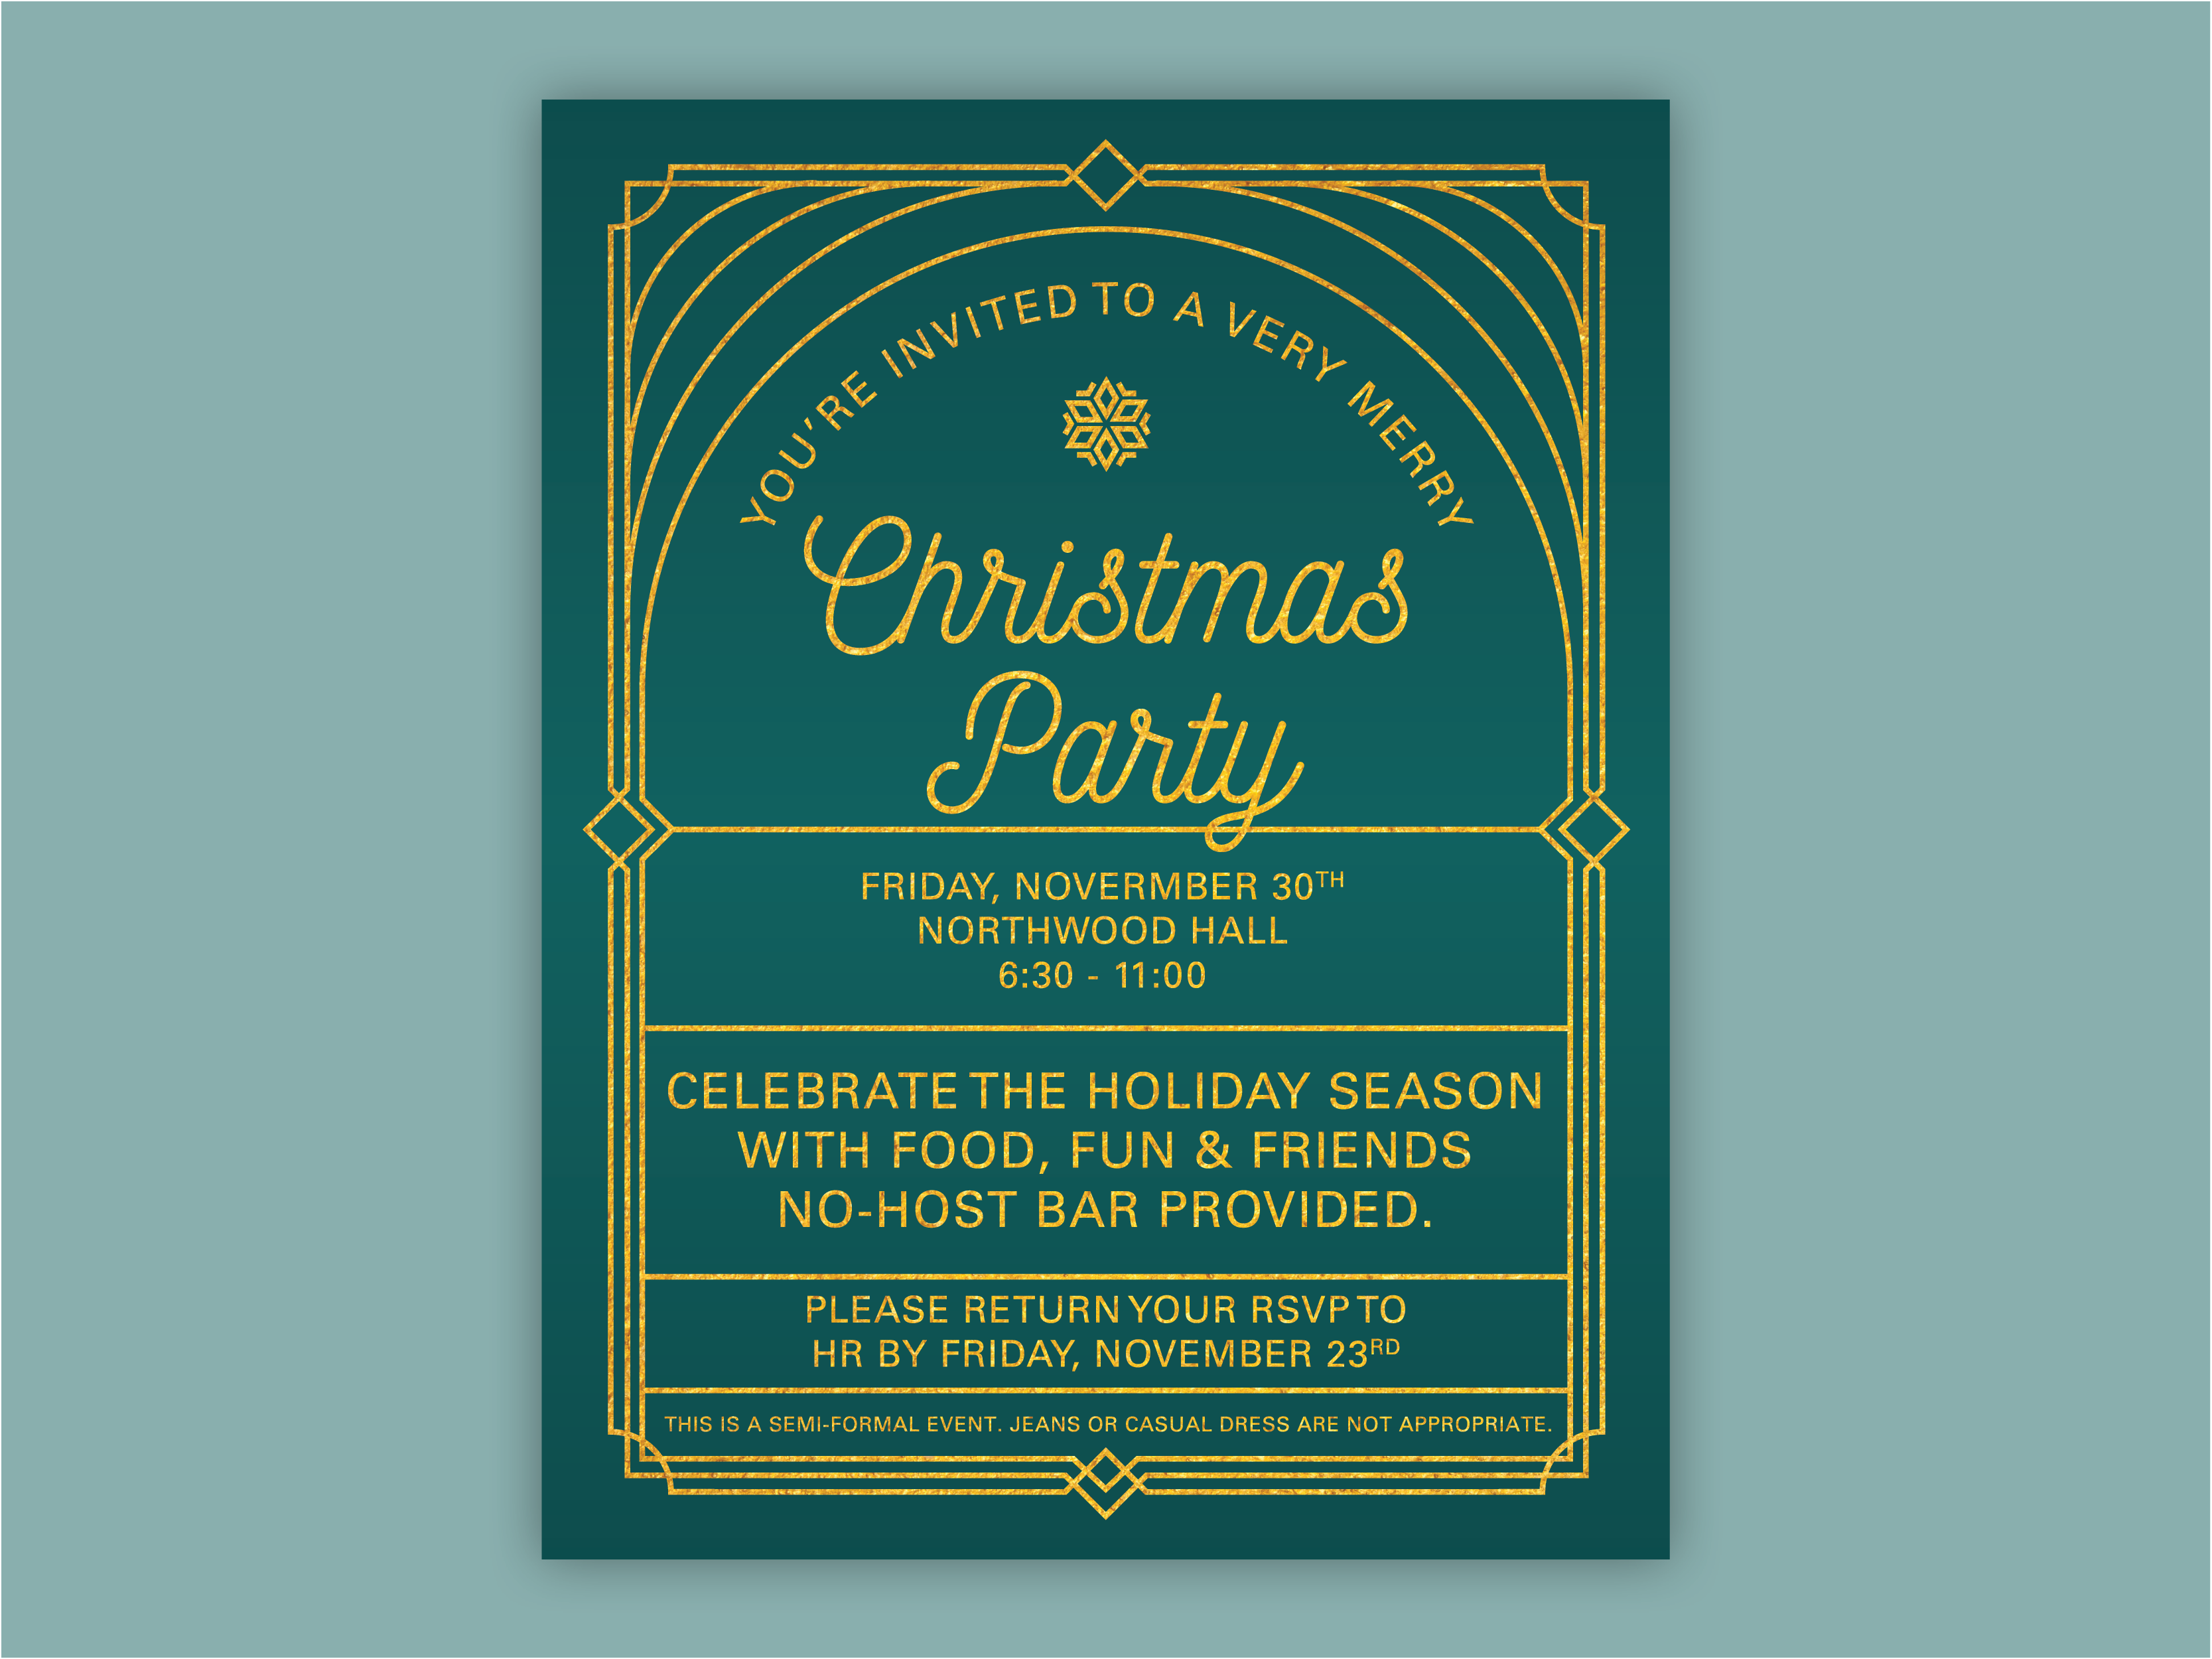 Christmas Party Invitation Christmas party invitations